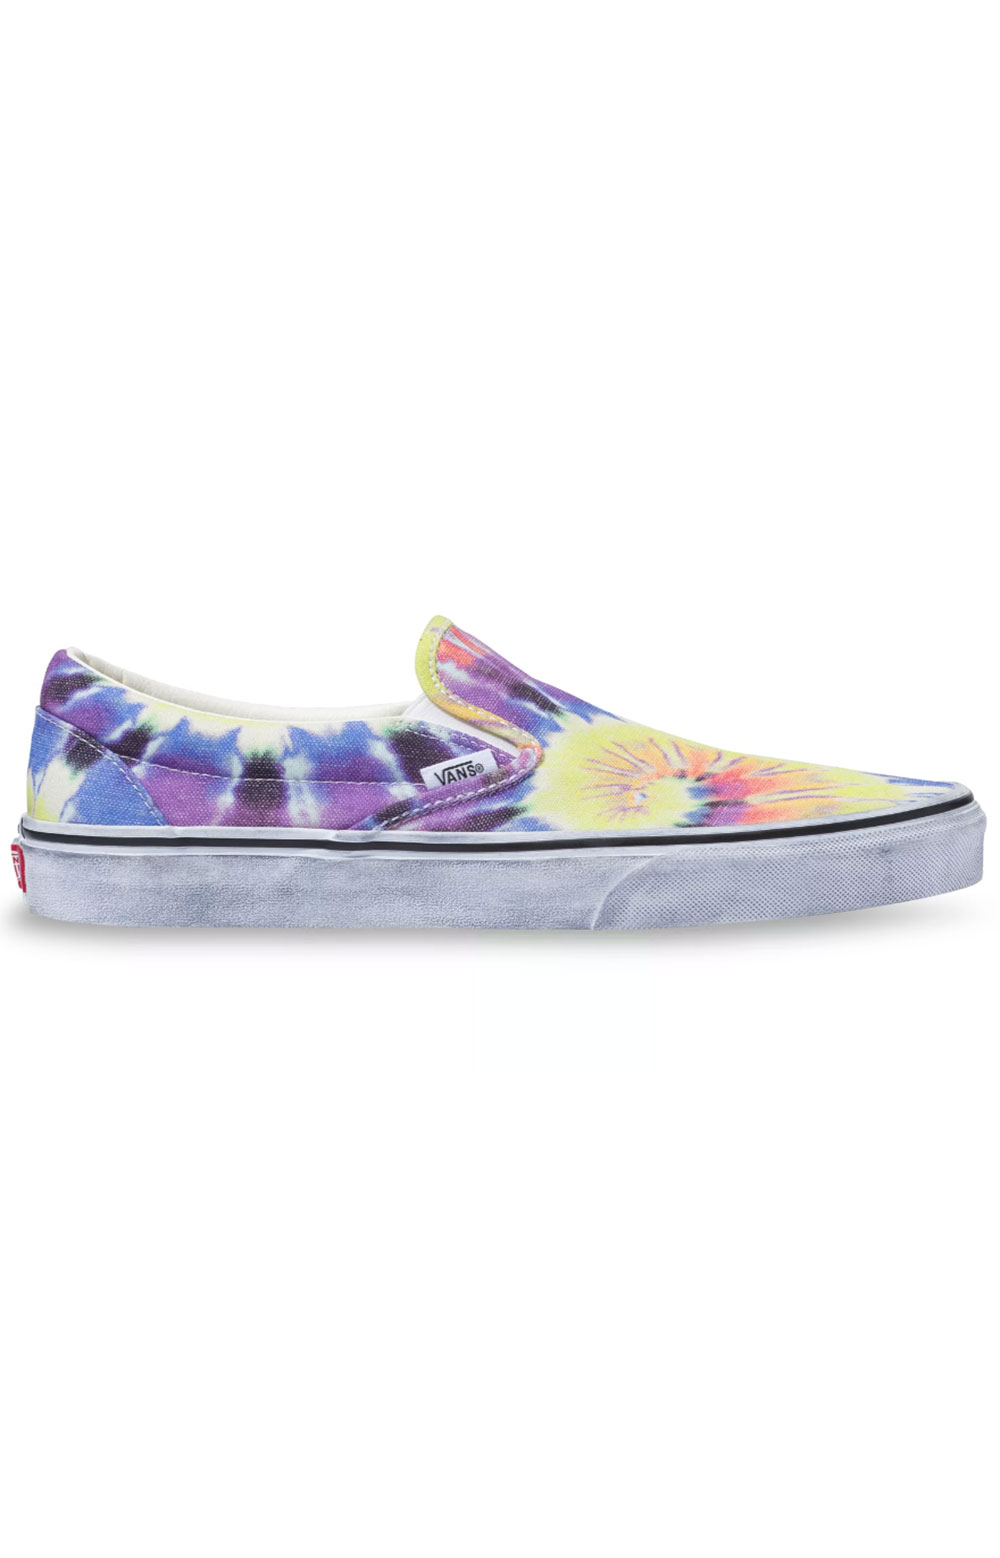 (U3819X) Washed Classic Slip-On Shoes- Tie-Dye/True White